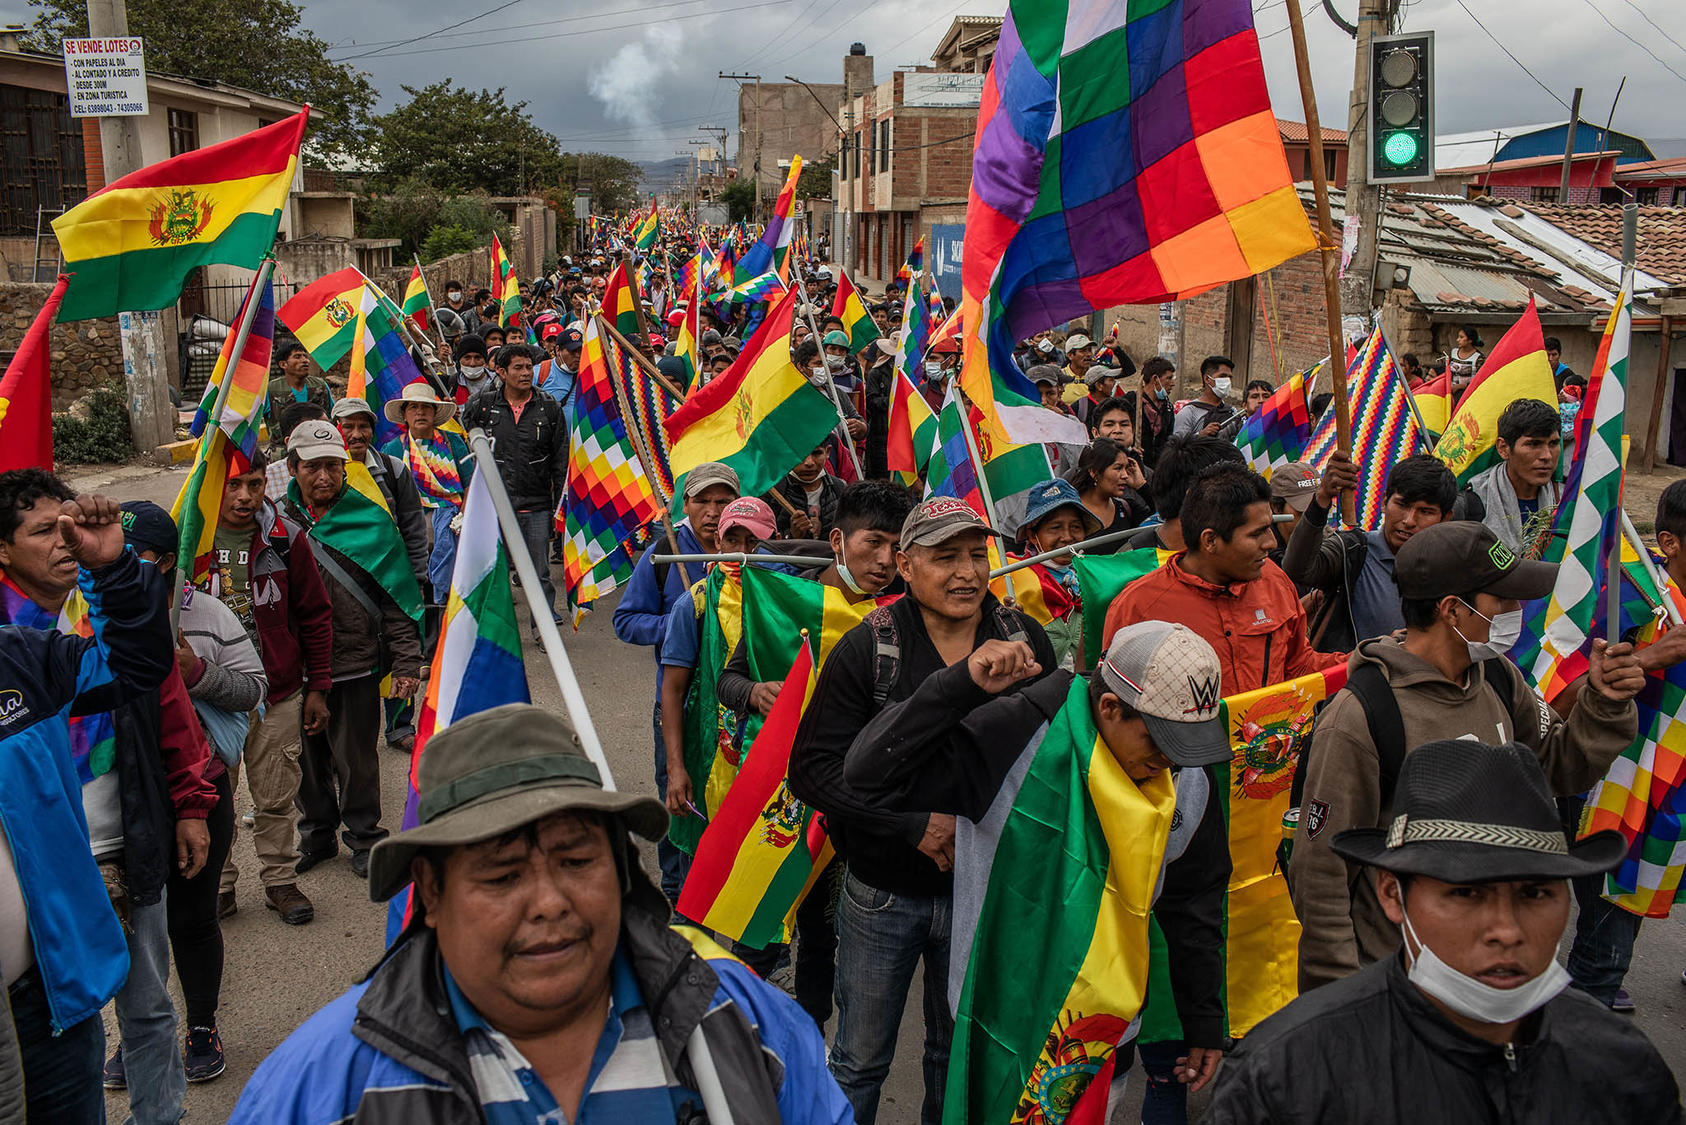 Demonstrators protest the transitional government in Sacaba, Bolivia, Nov. 14, 2019. The ouster of Bolivia's first indigenous president exposed the deep rift between Bolivia's Europeanized elite and majority indigenous population. (Victor Moriyama/The New York Times)